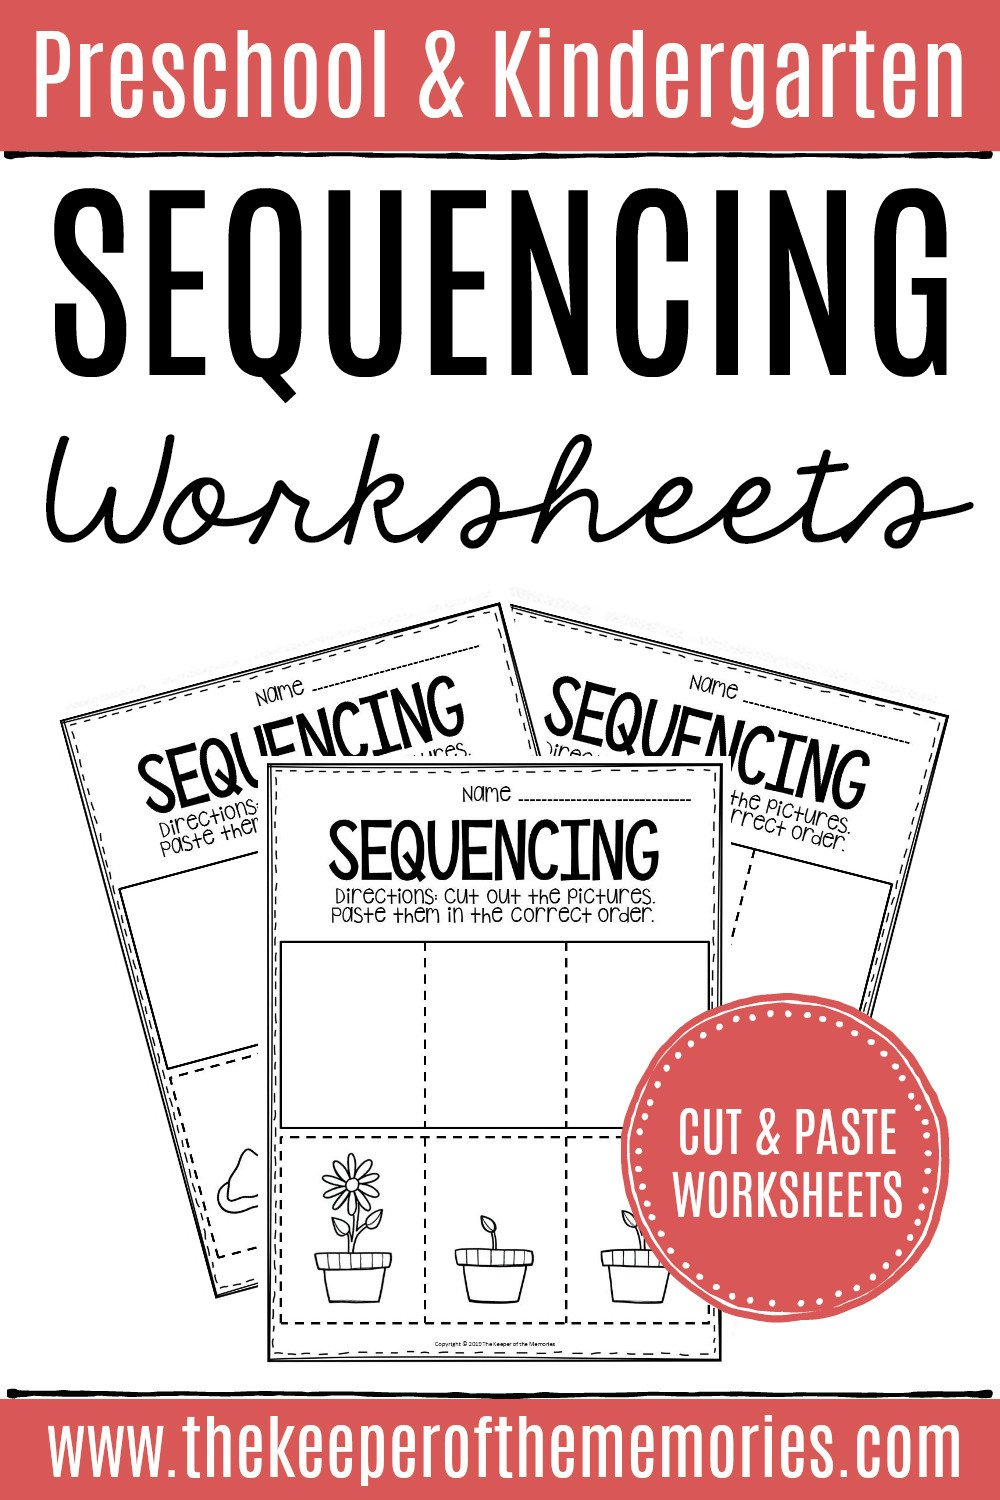 Free Cut and Paste Worksheets 3 Step Sequencing Worksheets the Keeper Of the Memories